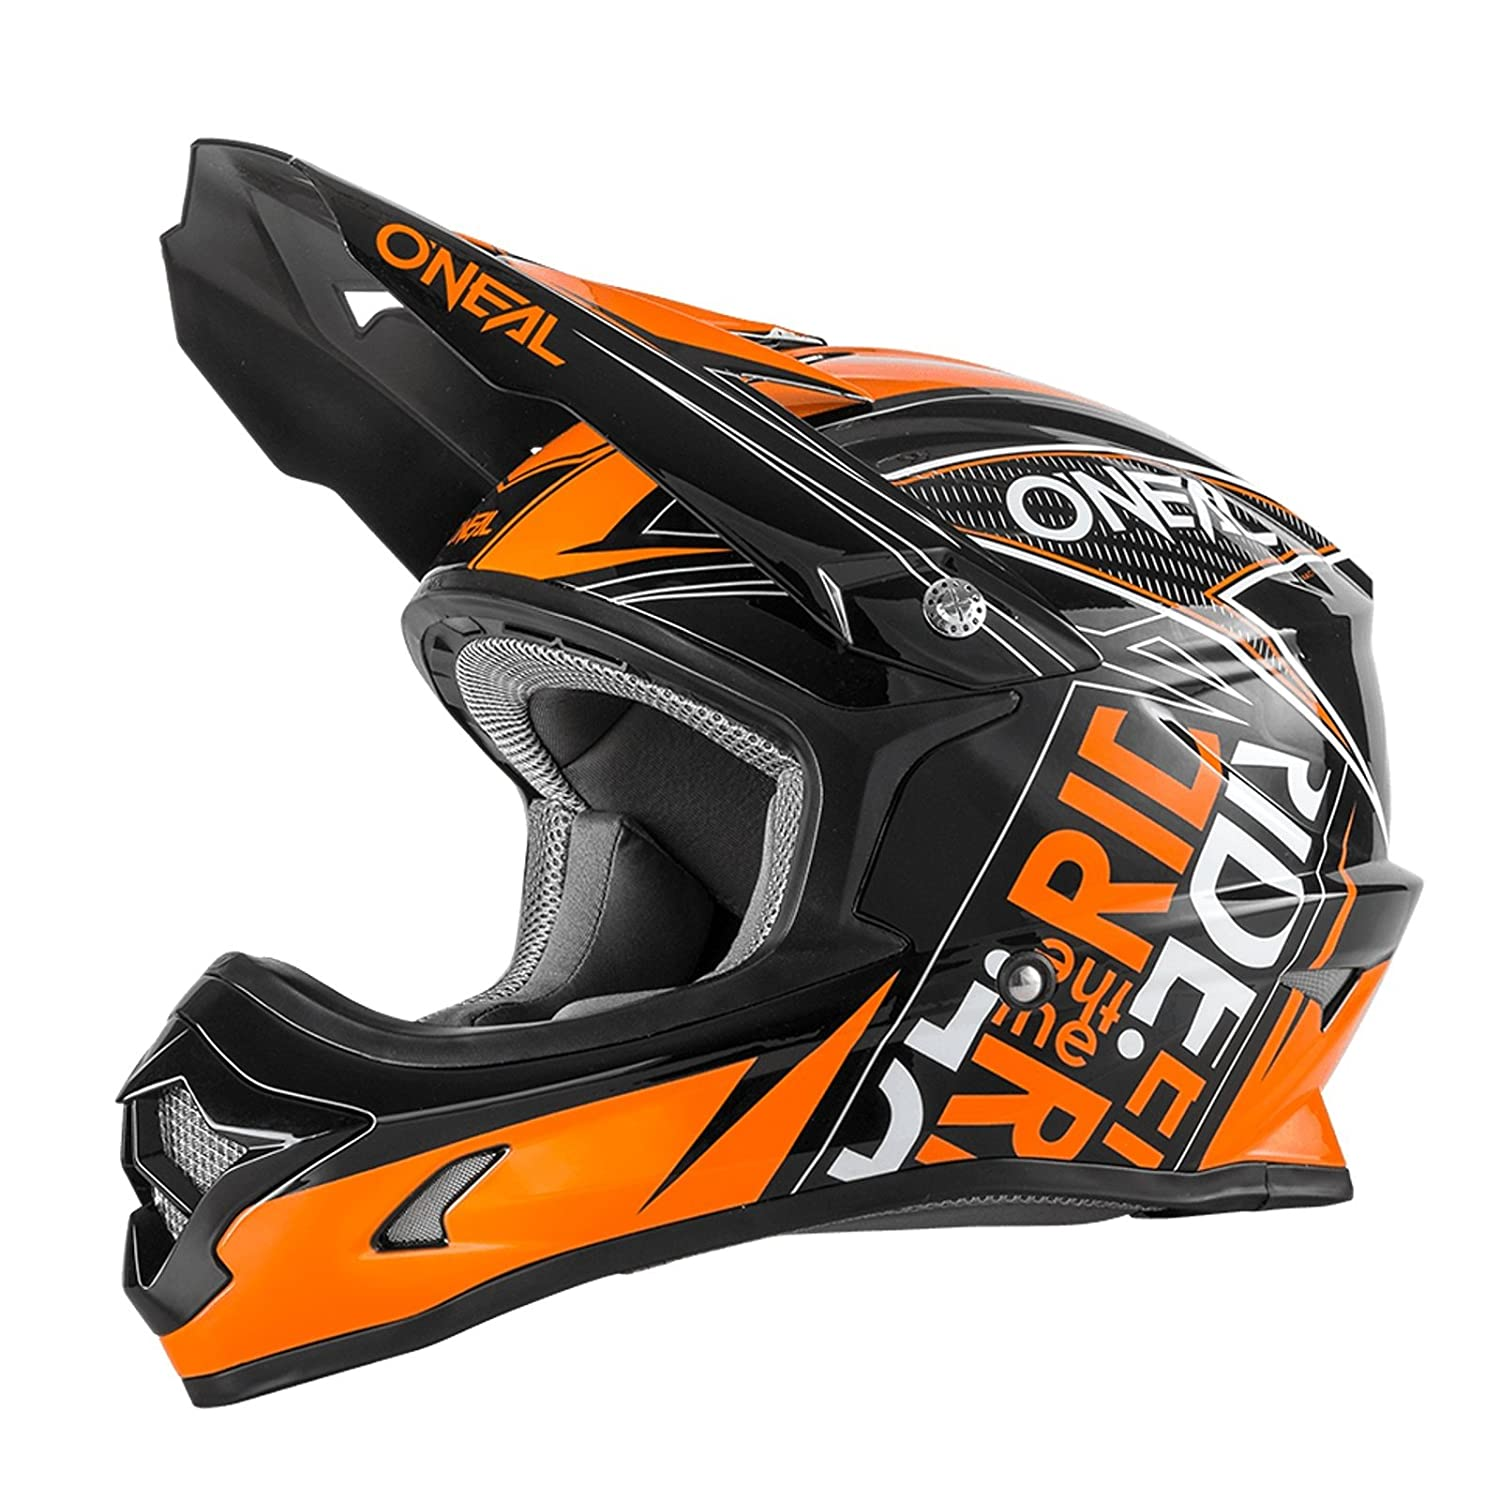 3Series Fuel orange Oneal 2017 Motocross//MTB Kinder Helm